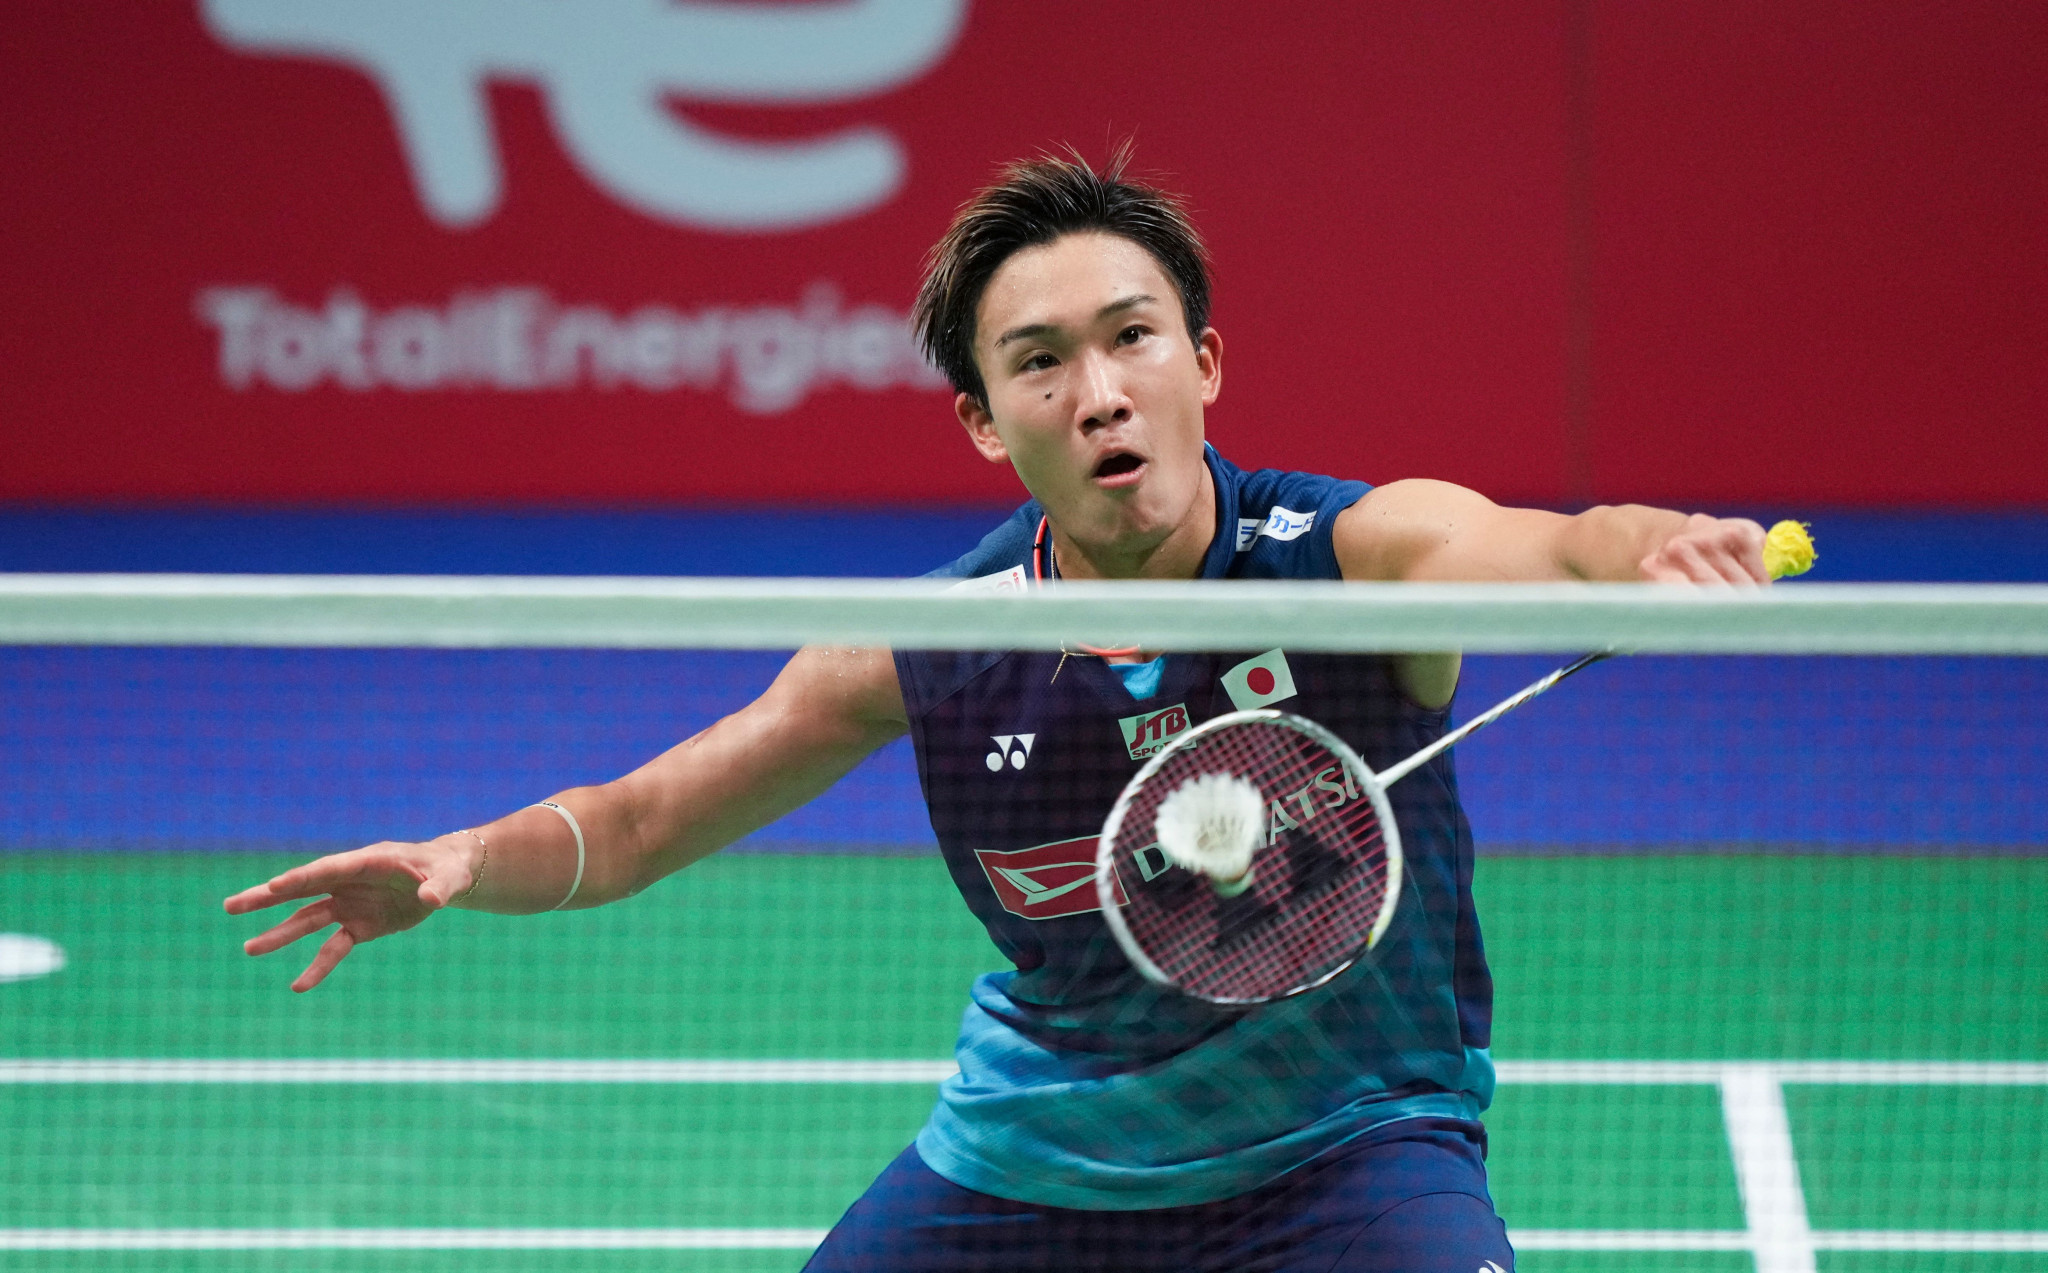 Japan's Momota and Yamaguchi march on at Denmark Open